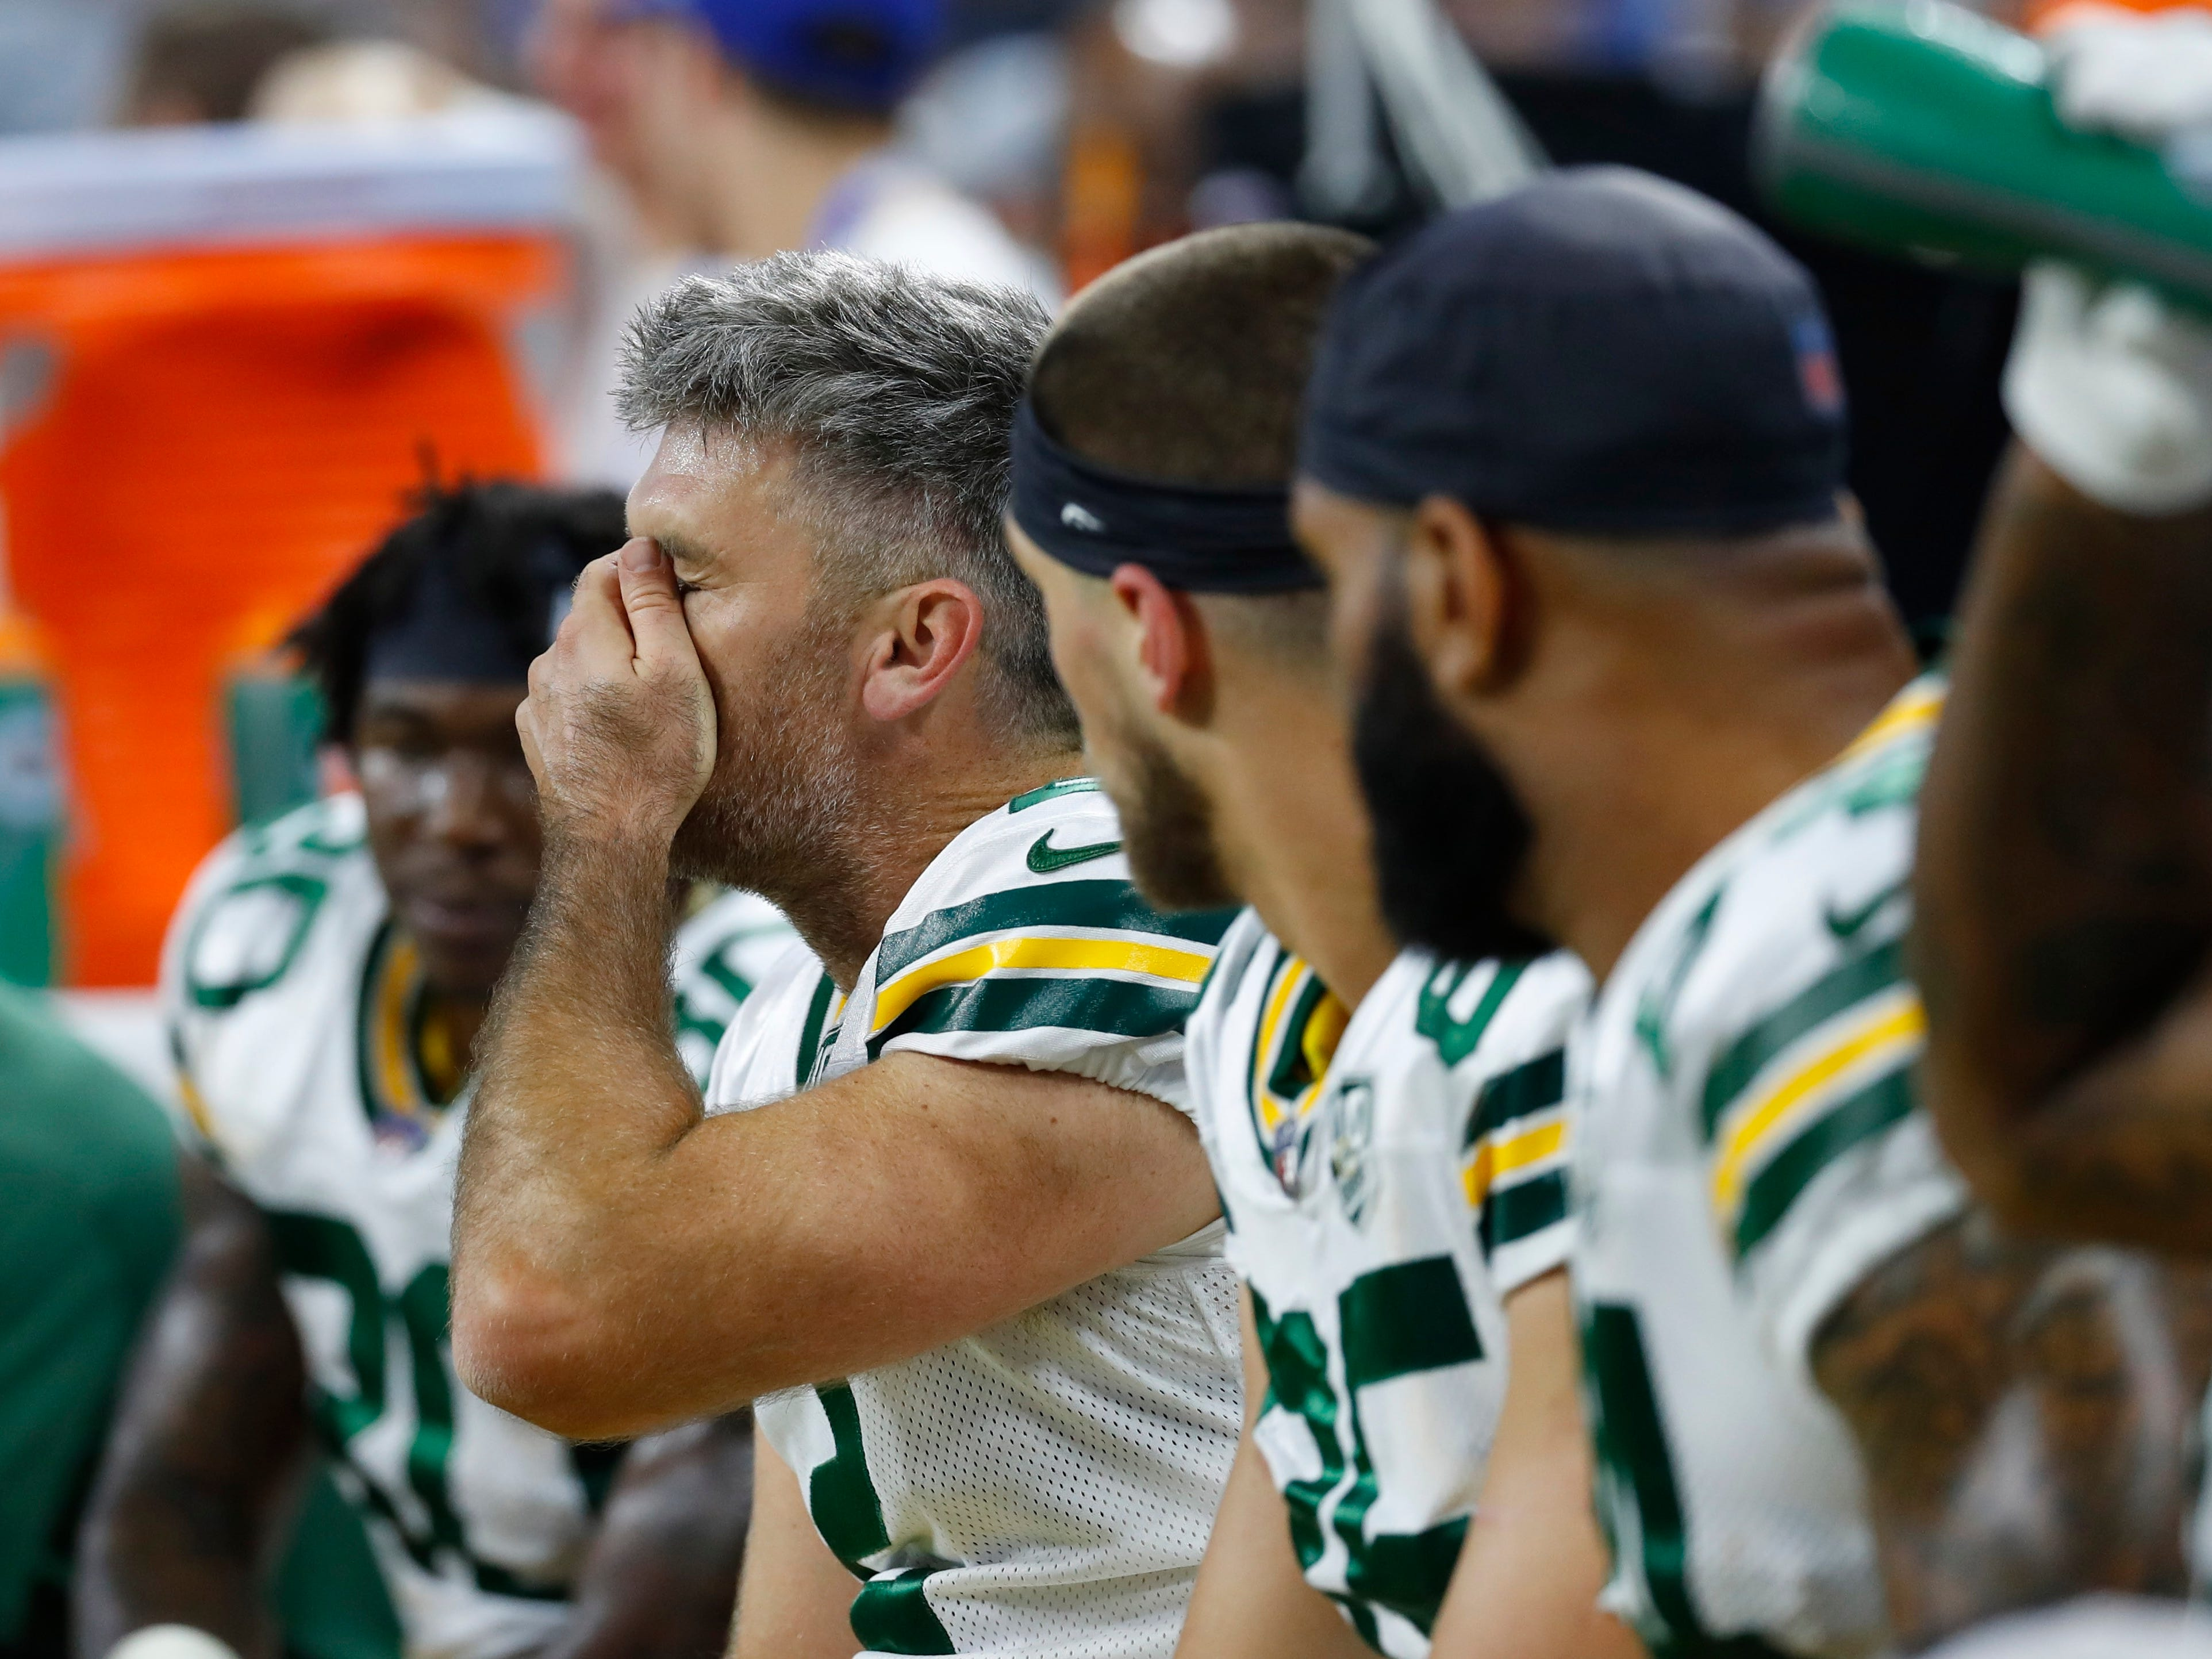 Green Bay Packers kicker Mason Crosby wipes his face on the bench after missing his third field goal of the day during the first half of an NFL football game against the Detroit Lions, Sunday, Oct. 7, 2018, in Detroit.